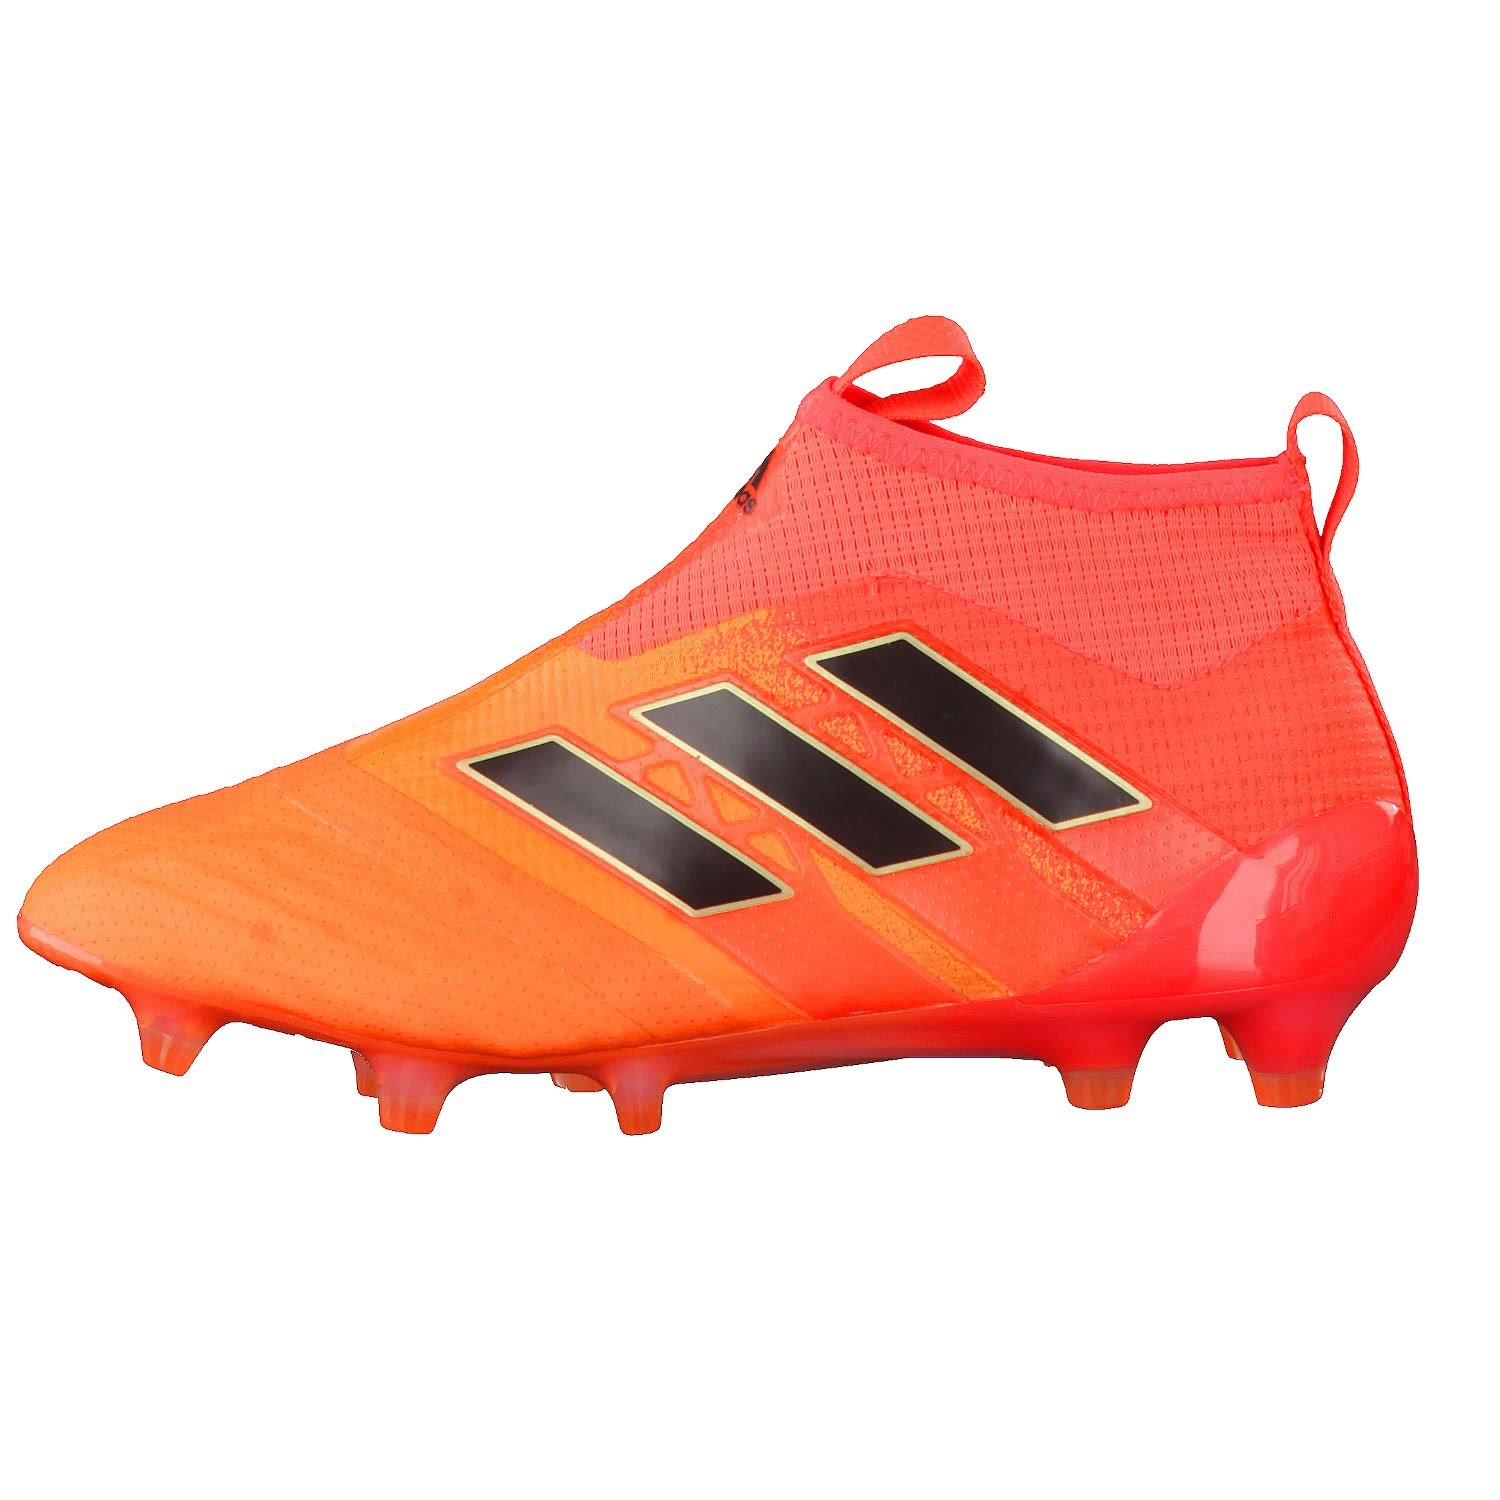 4853aed17d4 Amazon.com  adidas Performance Boys ACE 17+ PURECONTROL J FG Soccer Boots -  5  Sports   Outdoors